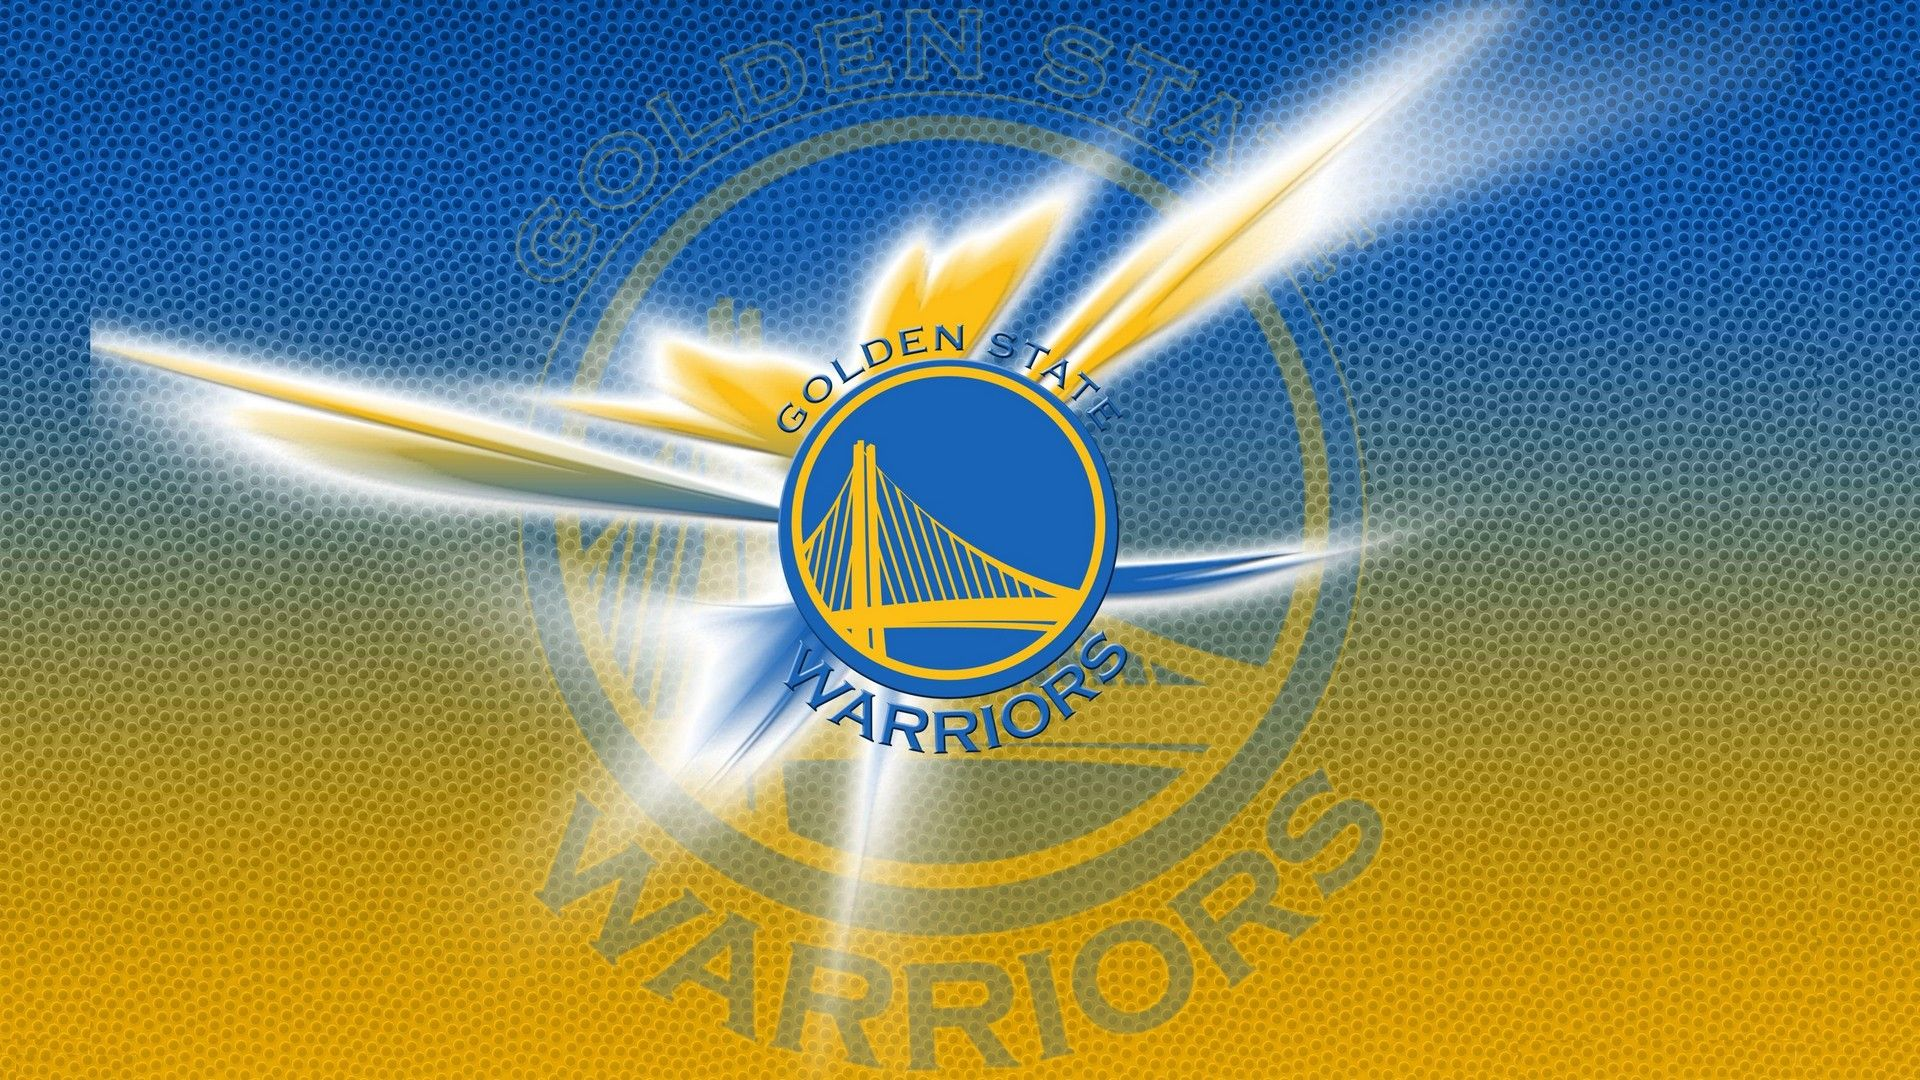 Hd Golden State Warriors Wallpapers 2021 Basketball Wallpaper Golden State Warriors Wallpaper Warriors Wallpaper Golden State Warriors